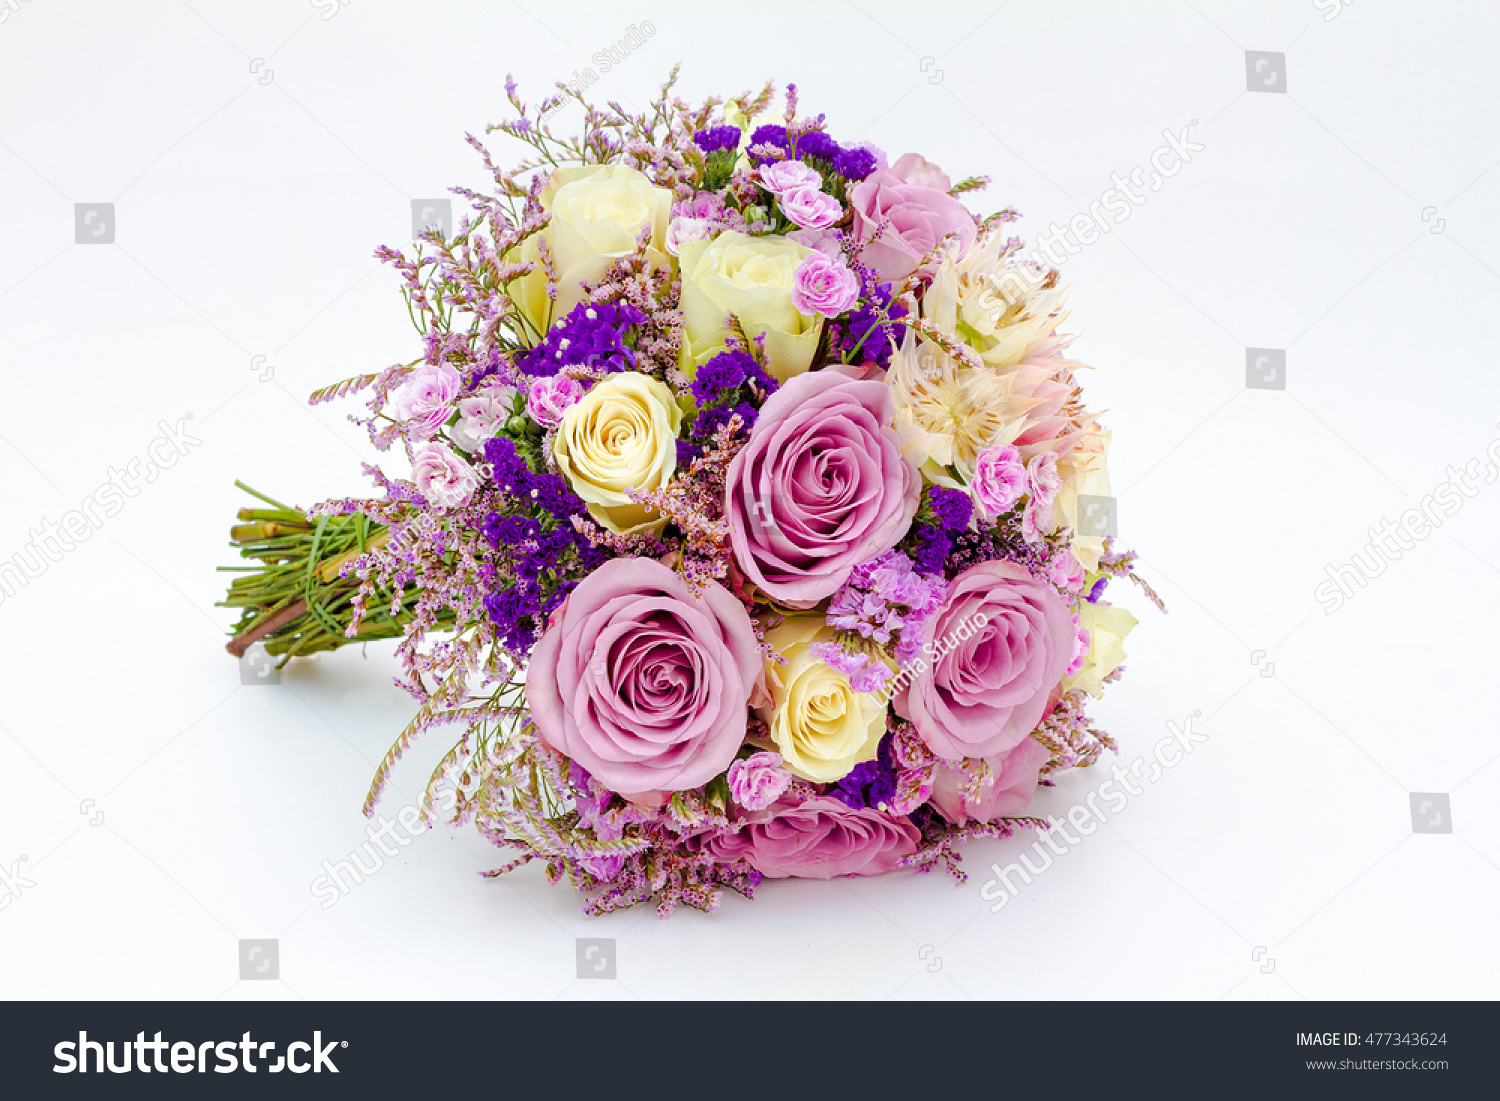 Wedding bouquet made of purple orchids and pink roses isolated on a ...